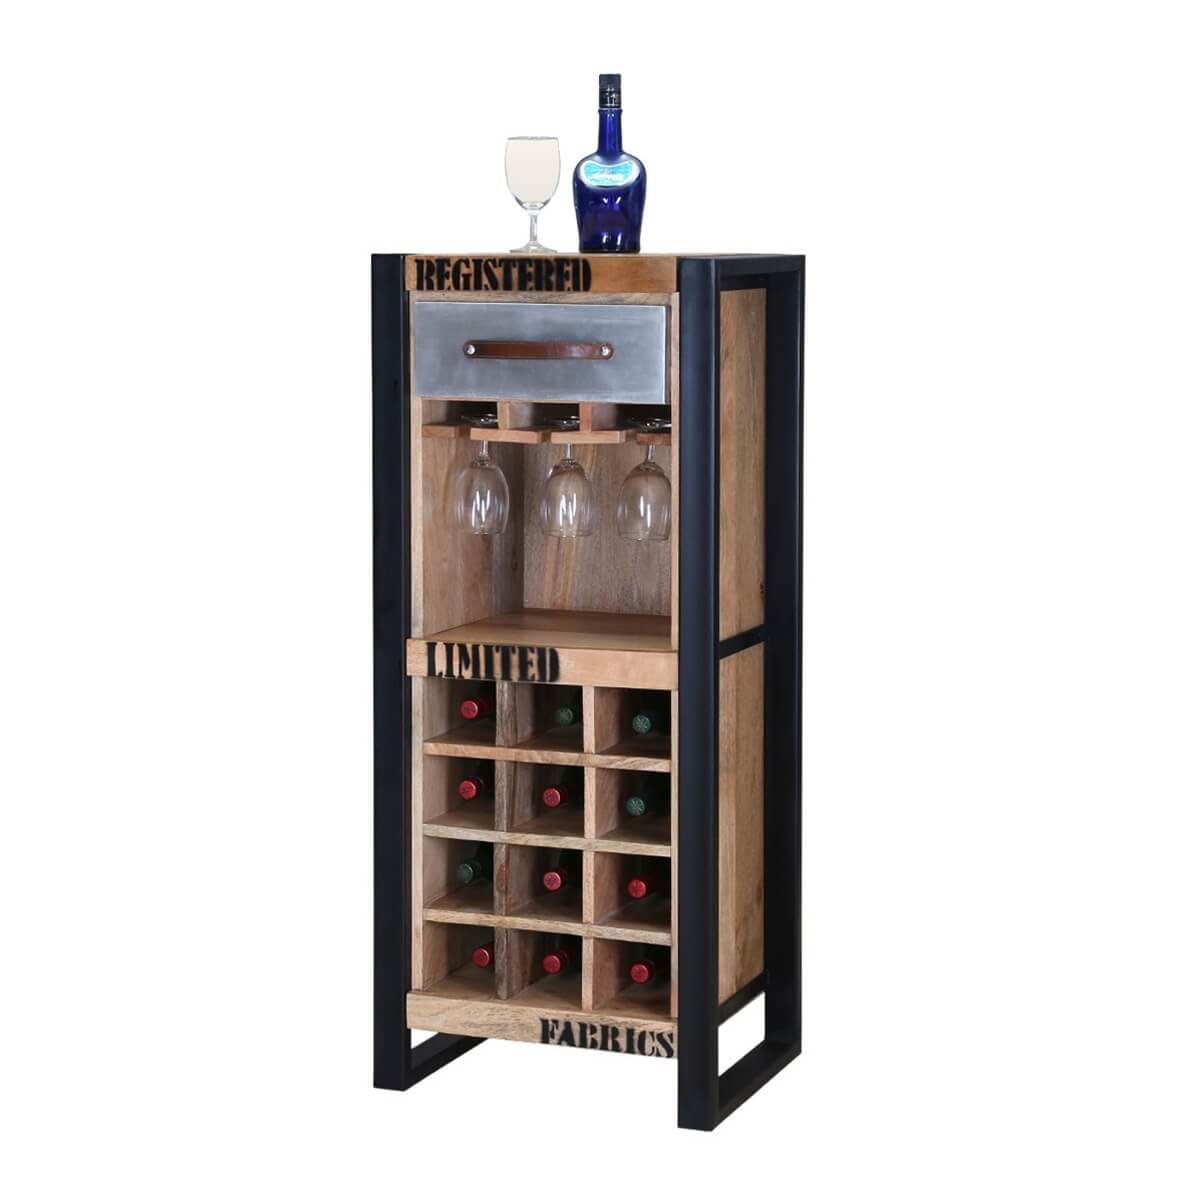 Modern Wine Rack Furniture Modern Industrial Rustic Mango Wood 12 Space Wine Rack Cabinet